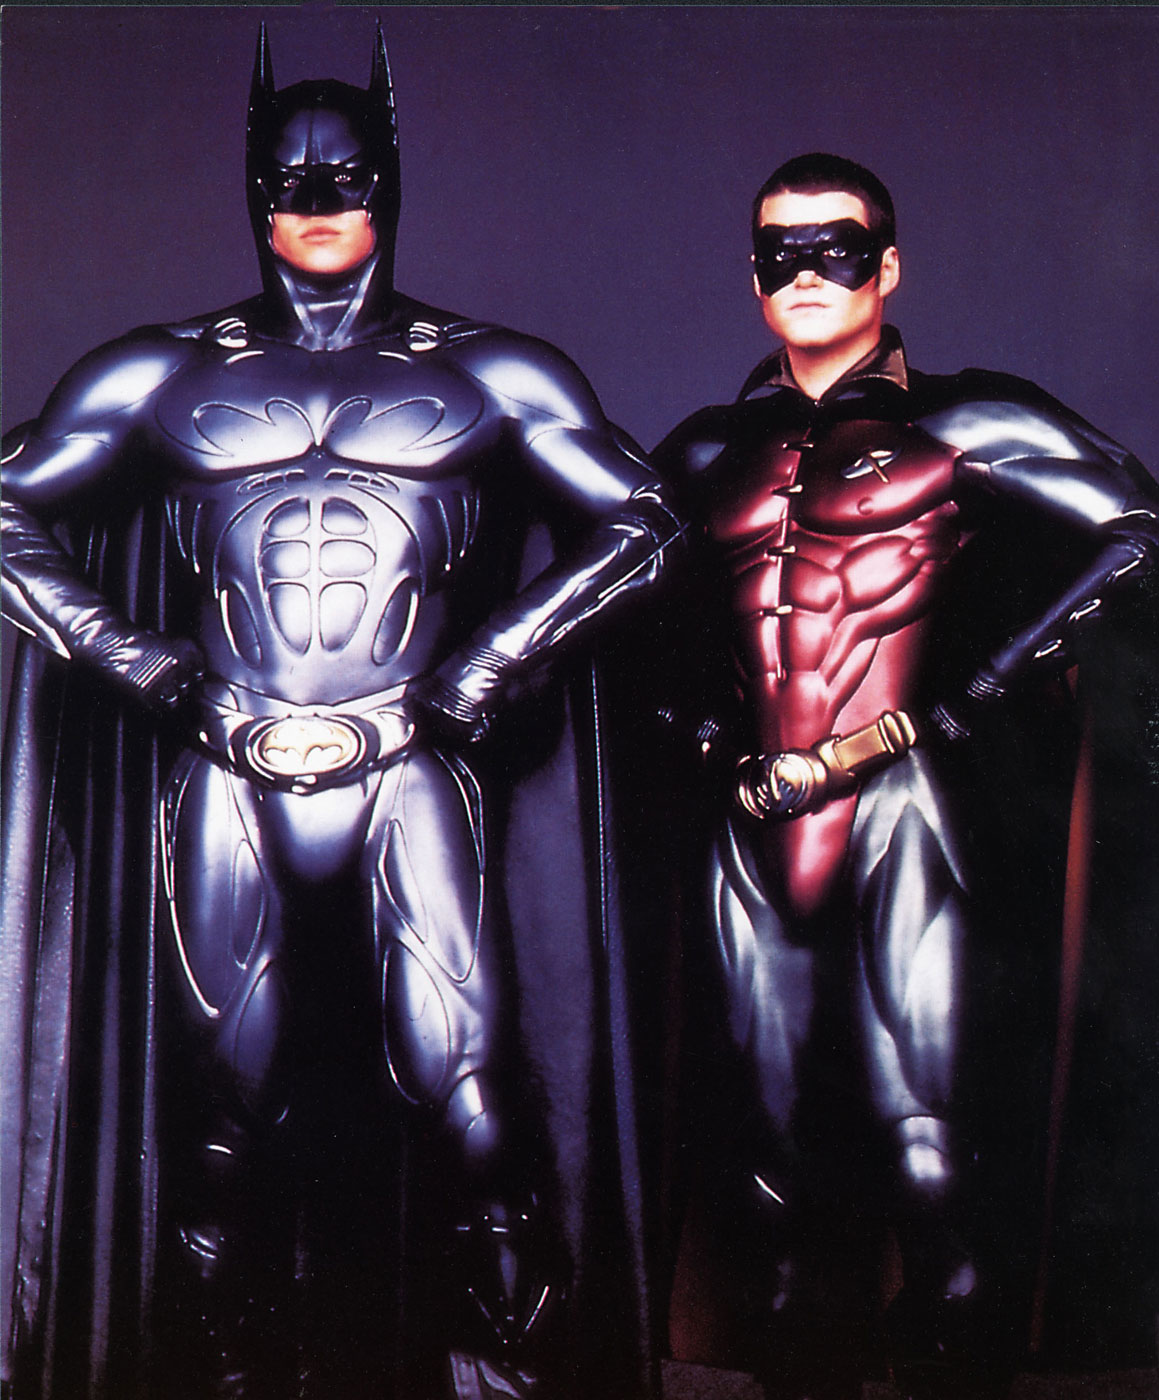 Chris O'Donnell played Robin for two different Batmen. He was Val Kilmer's Robin in 1995 (pictured above) and then joined George Clooney in 1997 for the widely panned <i>Batman &amp; Robin</i>.